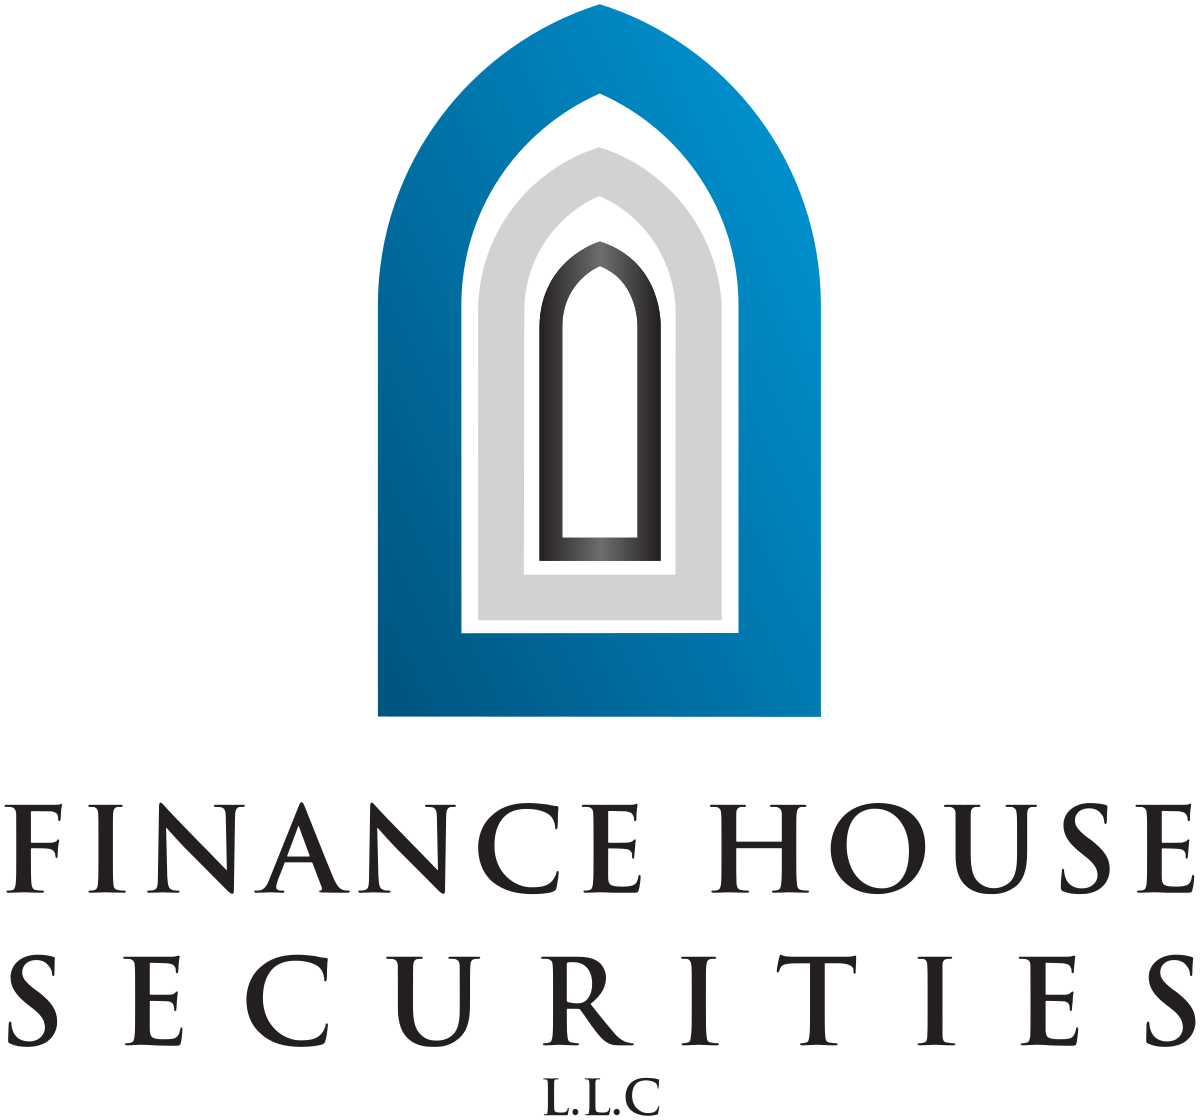 Vector securities privacy policy. Finance house wikipedia